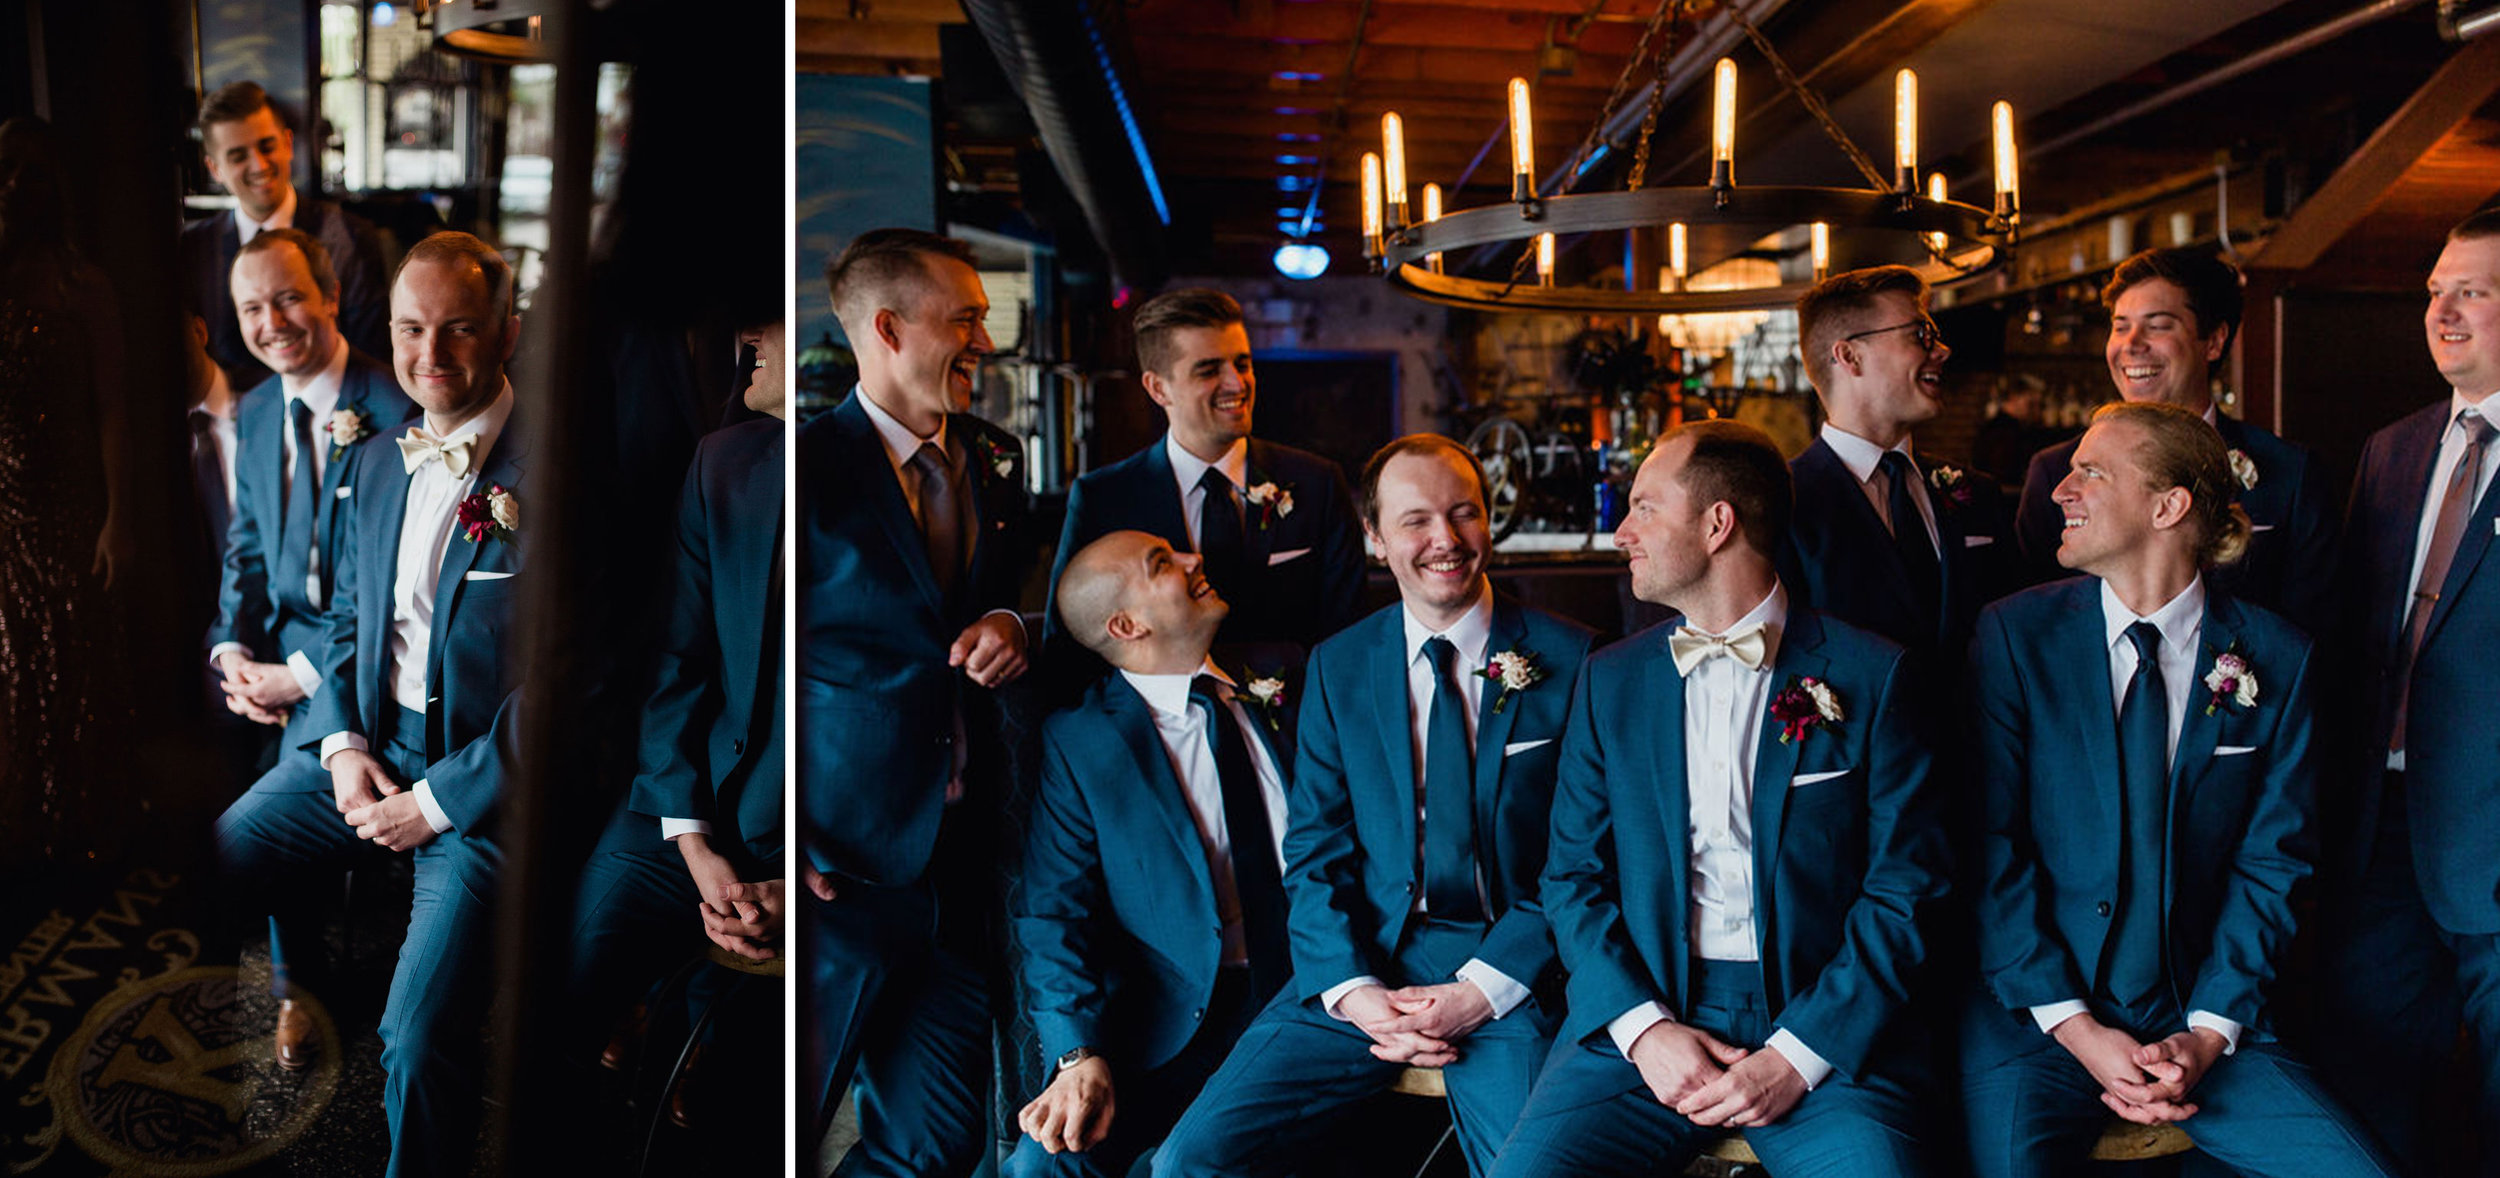 27 grooms men best man first look rachel desjardins studio wedding story telling moments photography kellermans event center minnesota.jpg